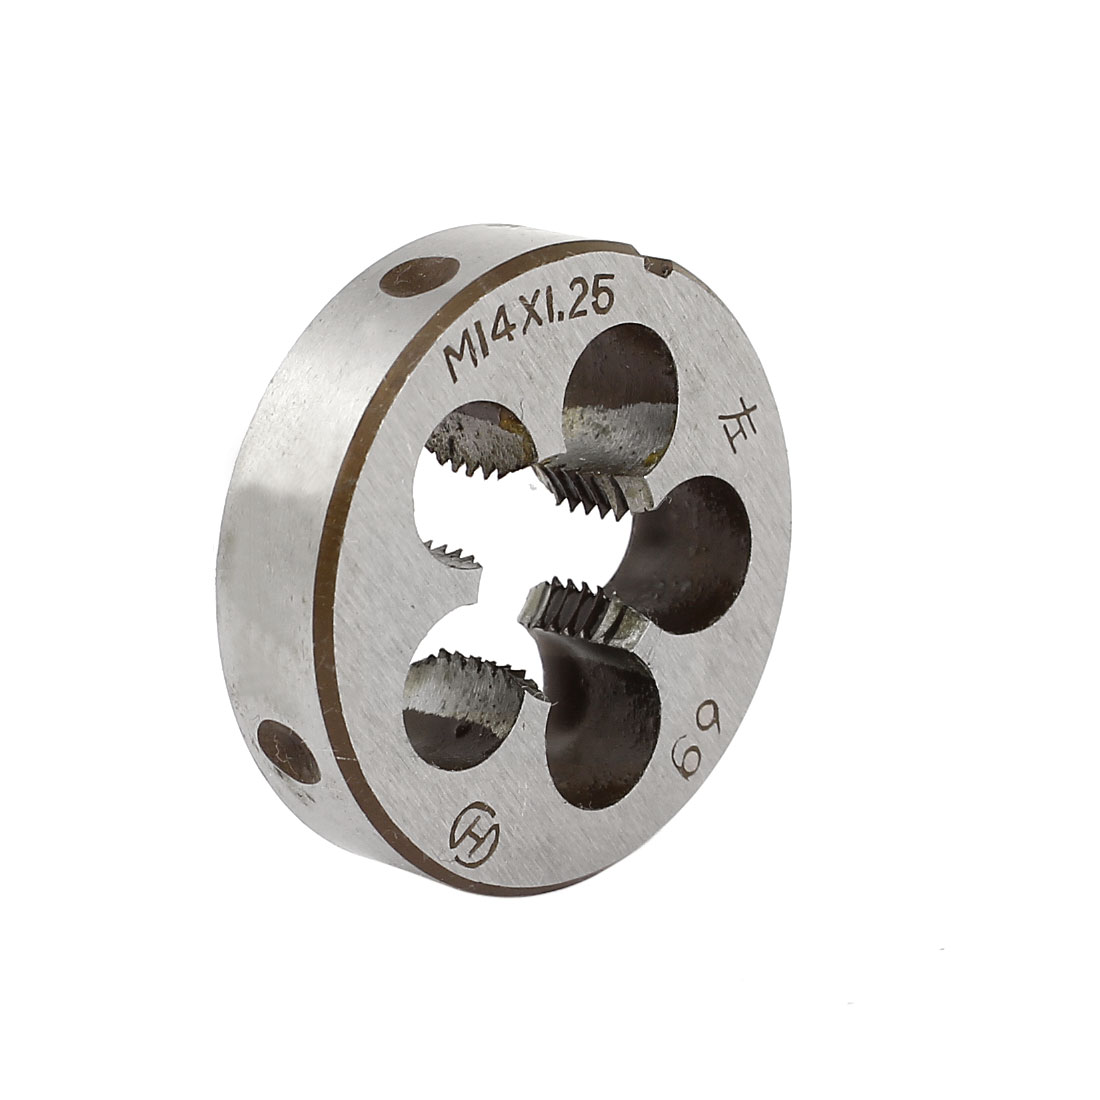 M14 x 1.25mm Metric 38mm OD Dia Steel Round Threading Die Thread Cutting Tool